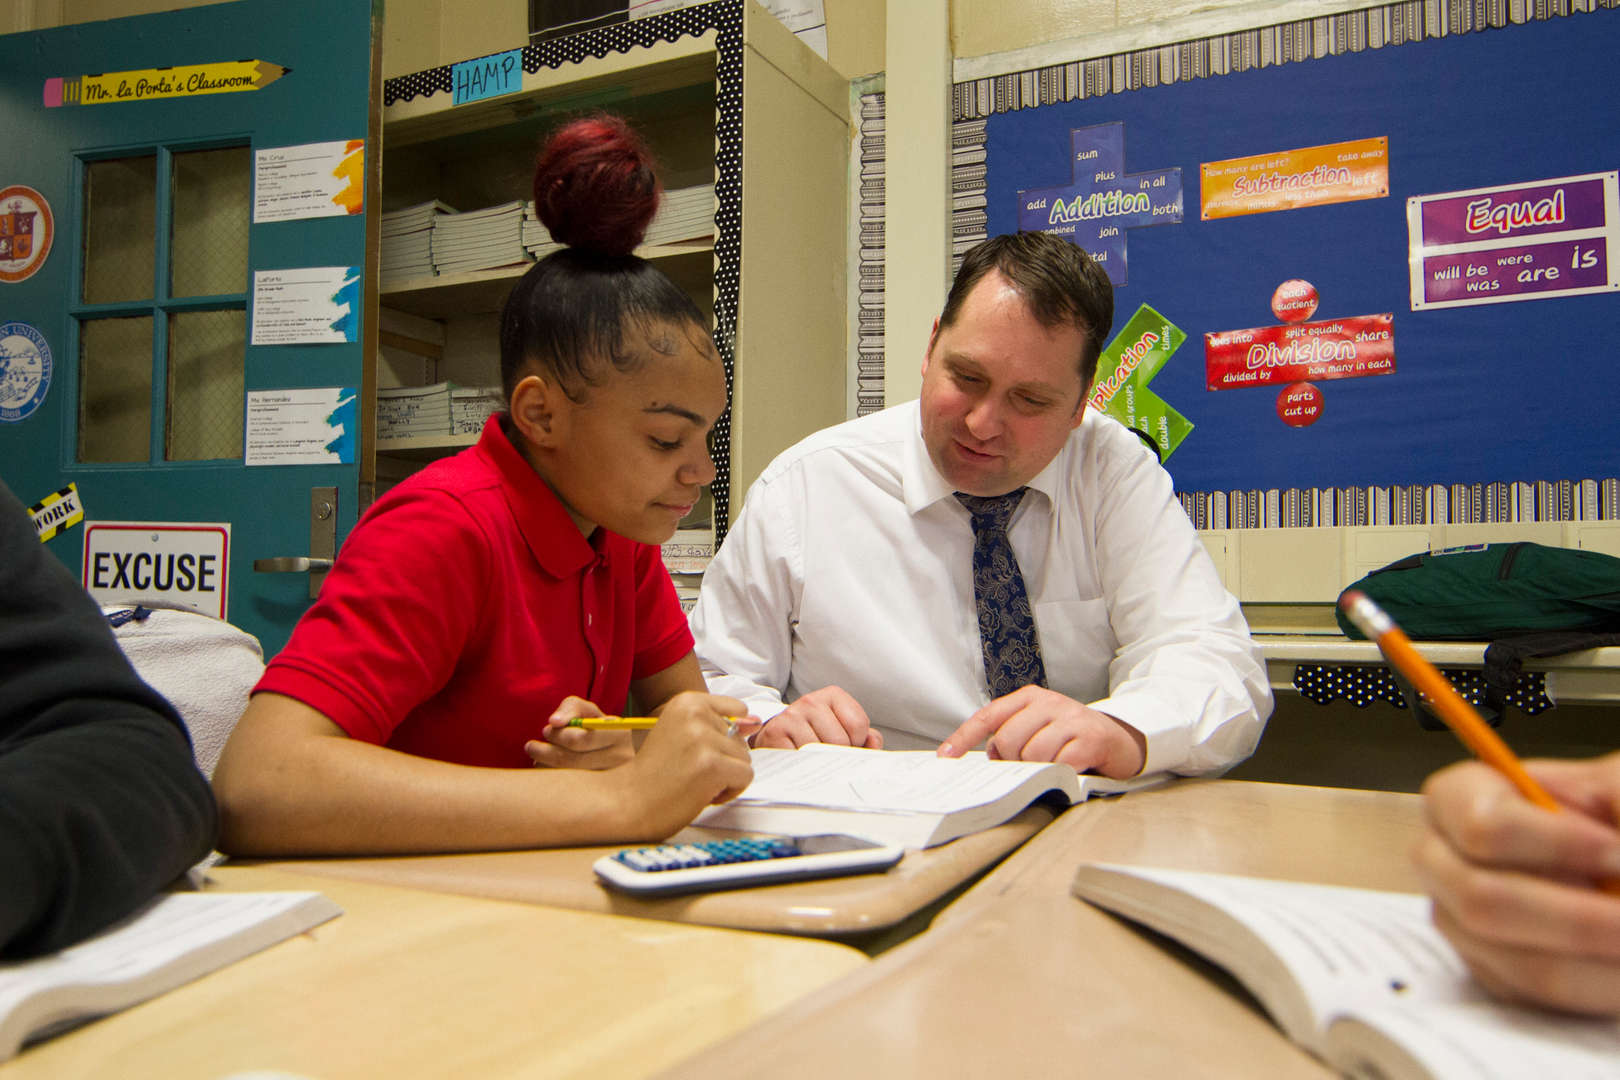 Principal H working with a student